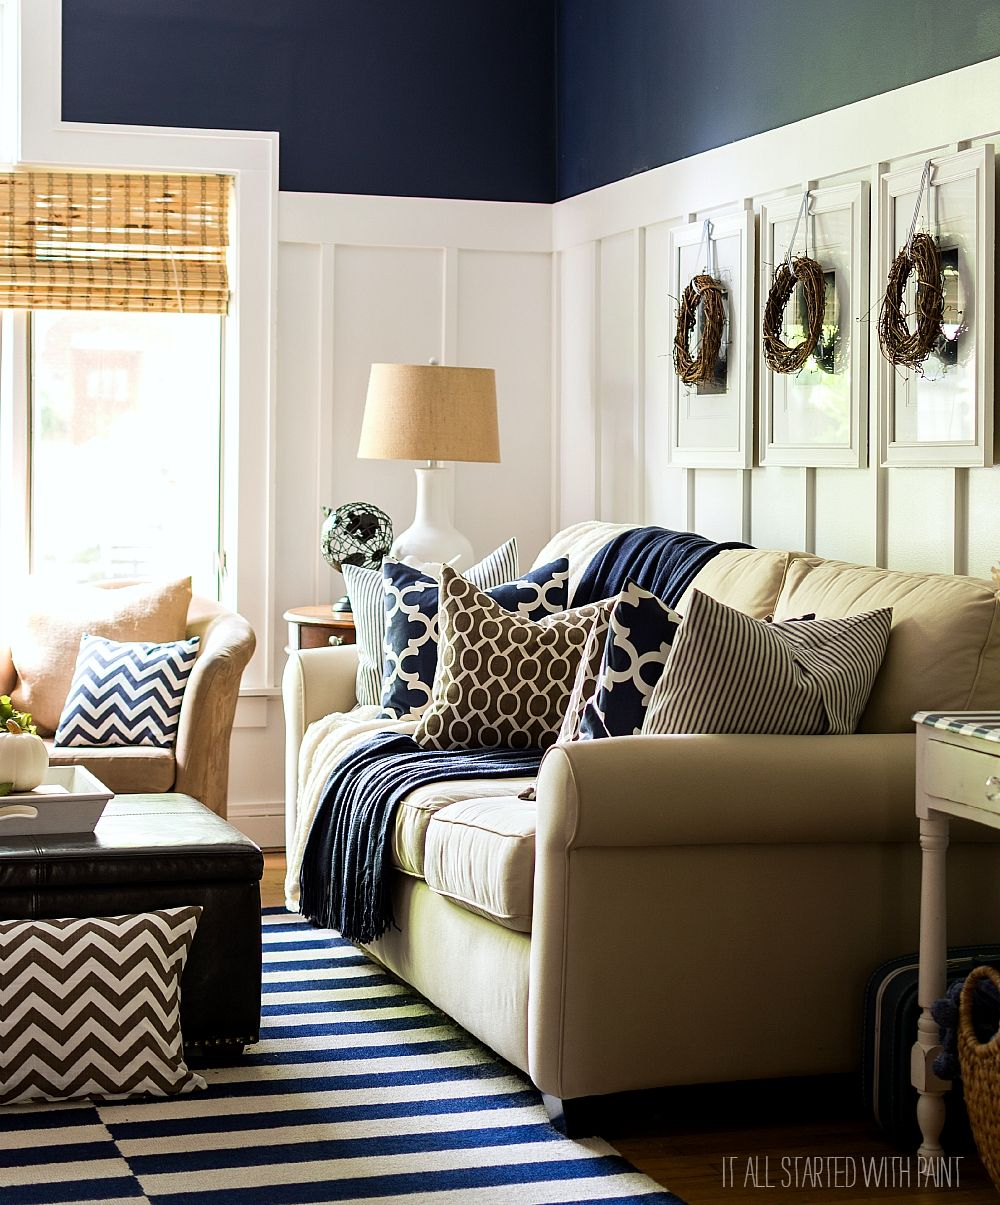 Fall Decor In Navy And Blue Favorite Finds Living Room Room